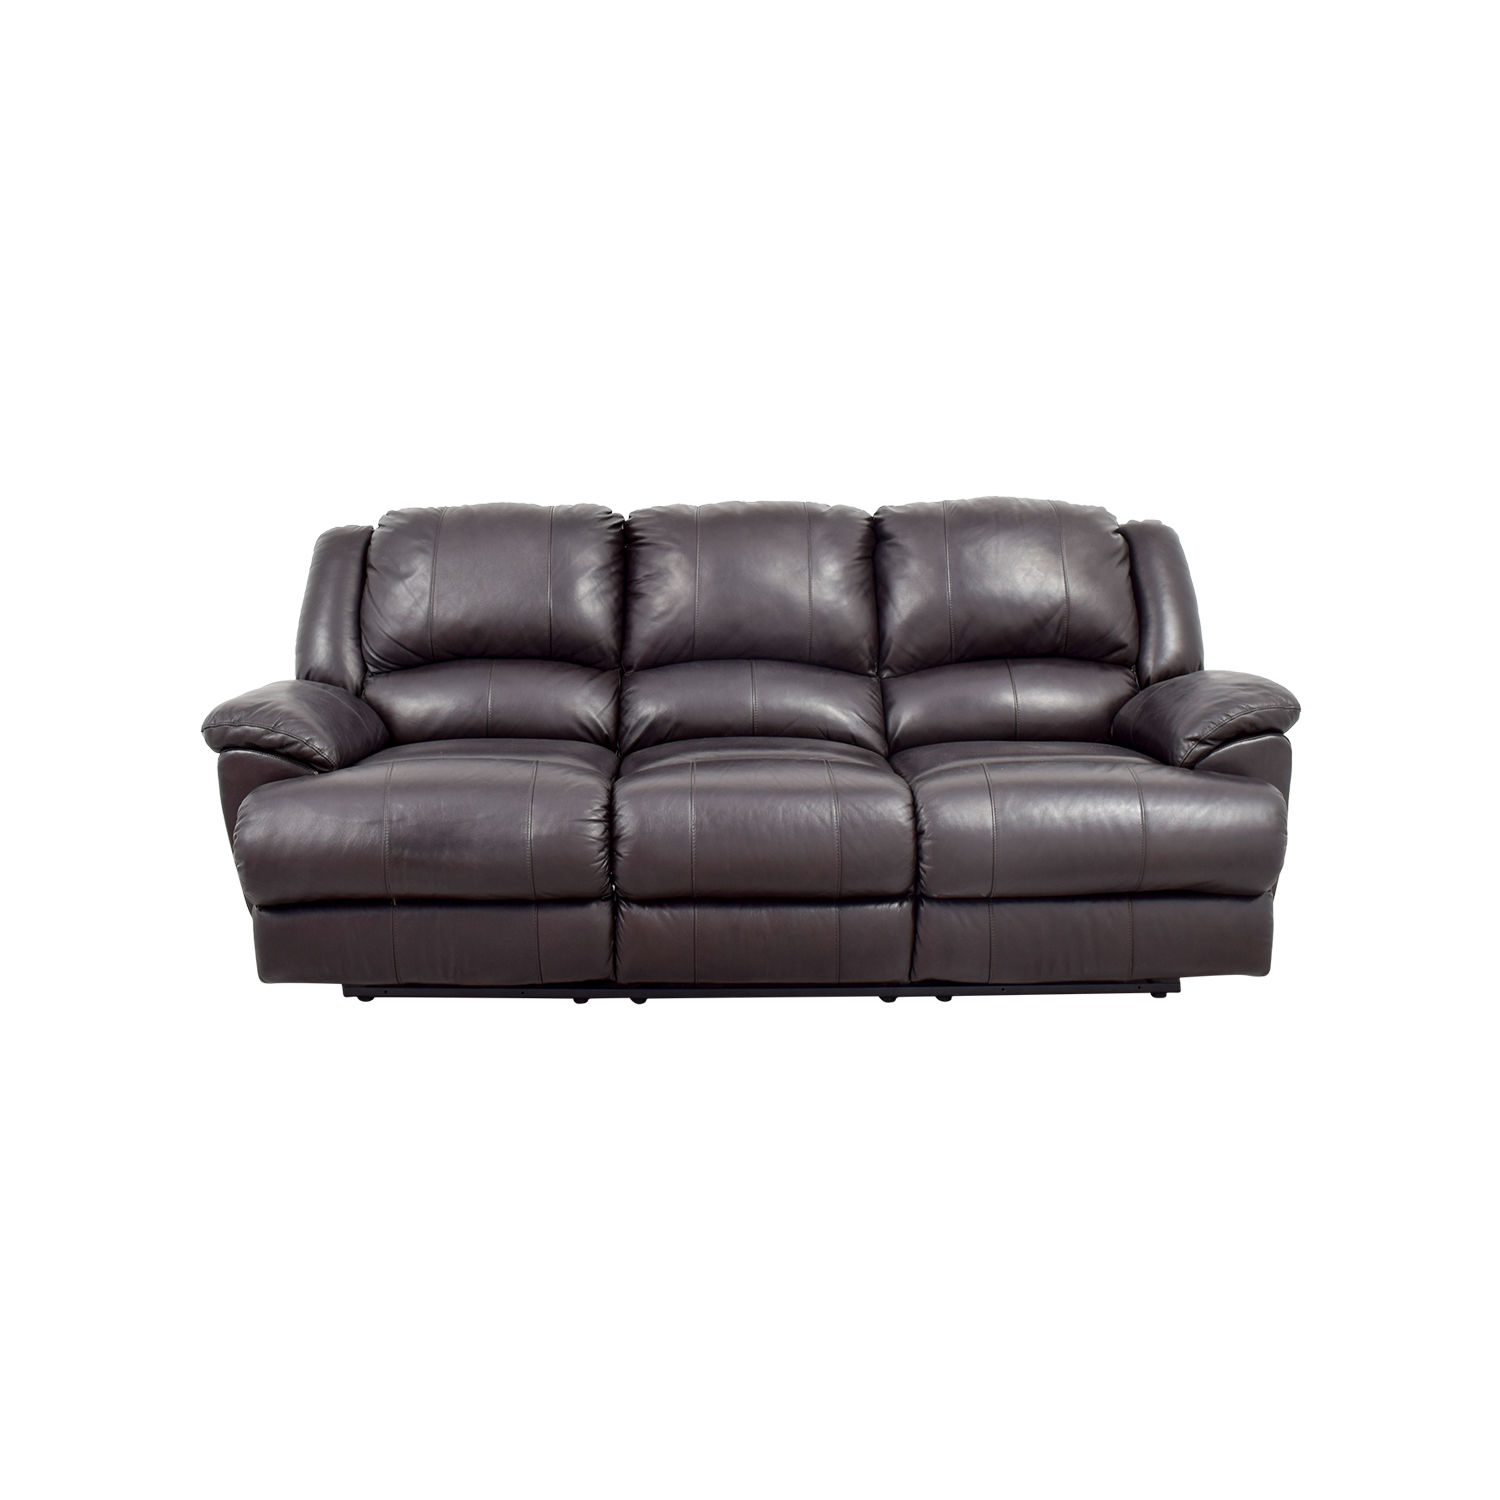 jennifer convertibles leather reclining sofa sure fit covers target remarkable